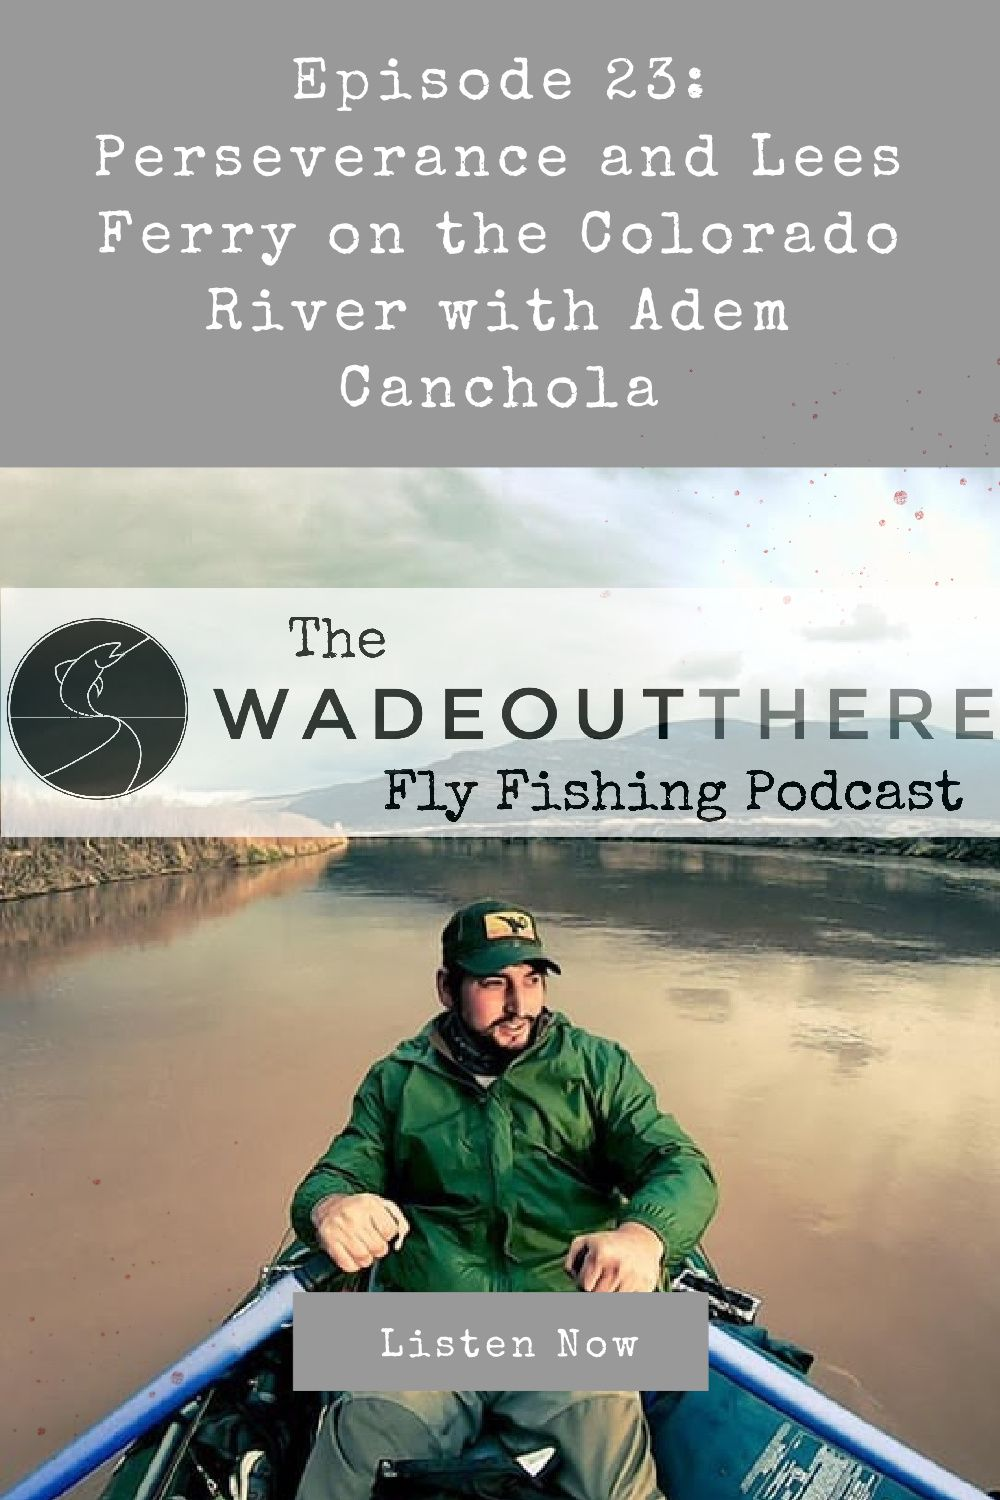 Wadeoutthere Fly Fishing Podcast Wadeoutthere In 2021 Fly Fishing Podcasts Colorado River